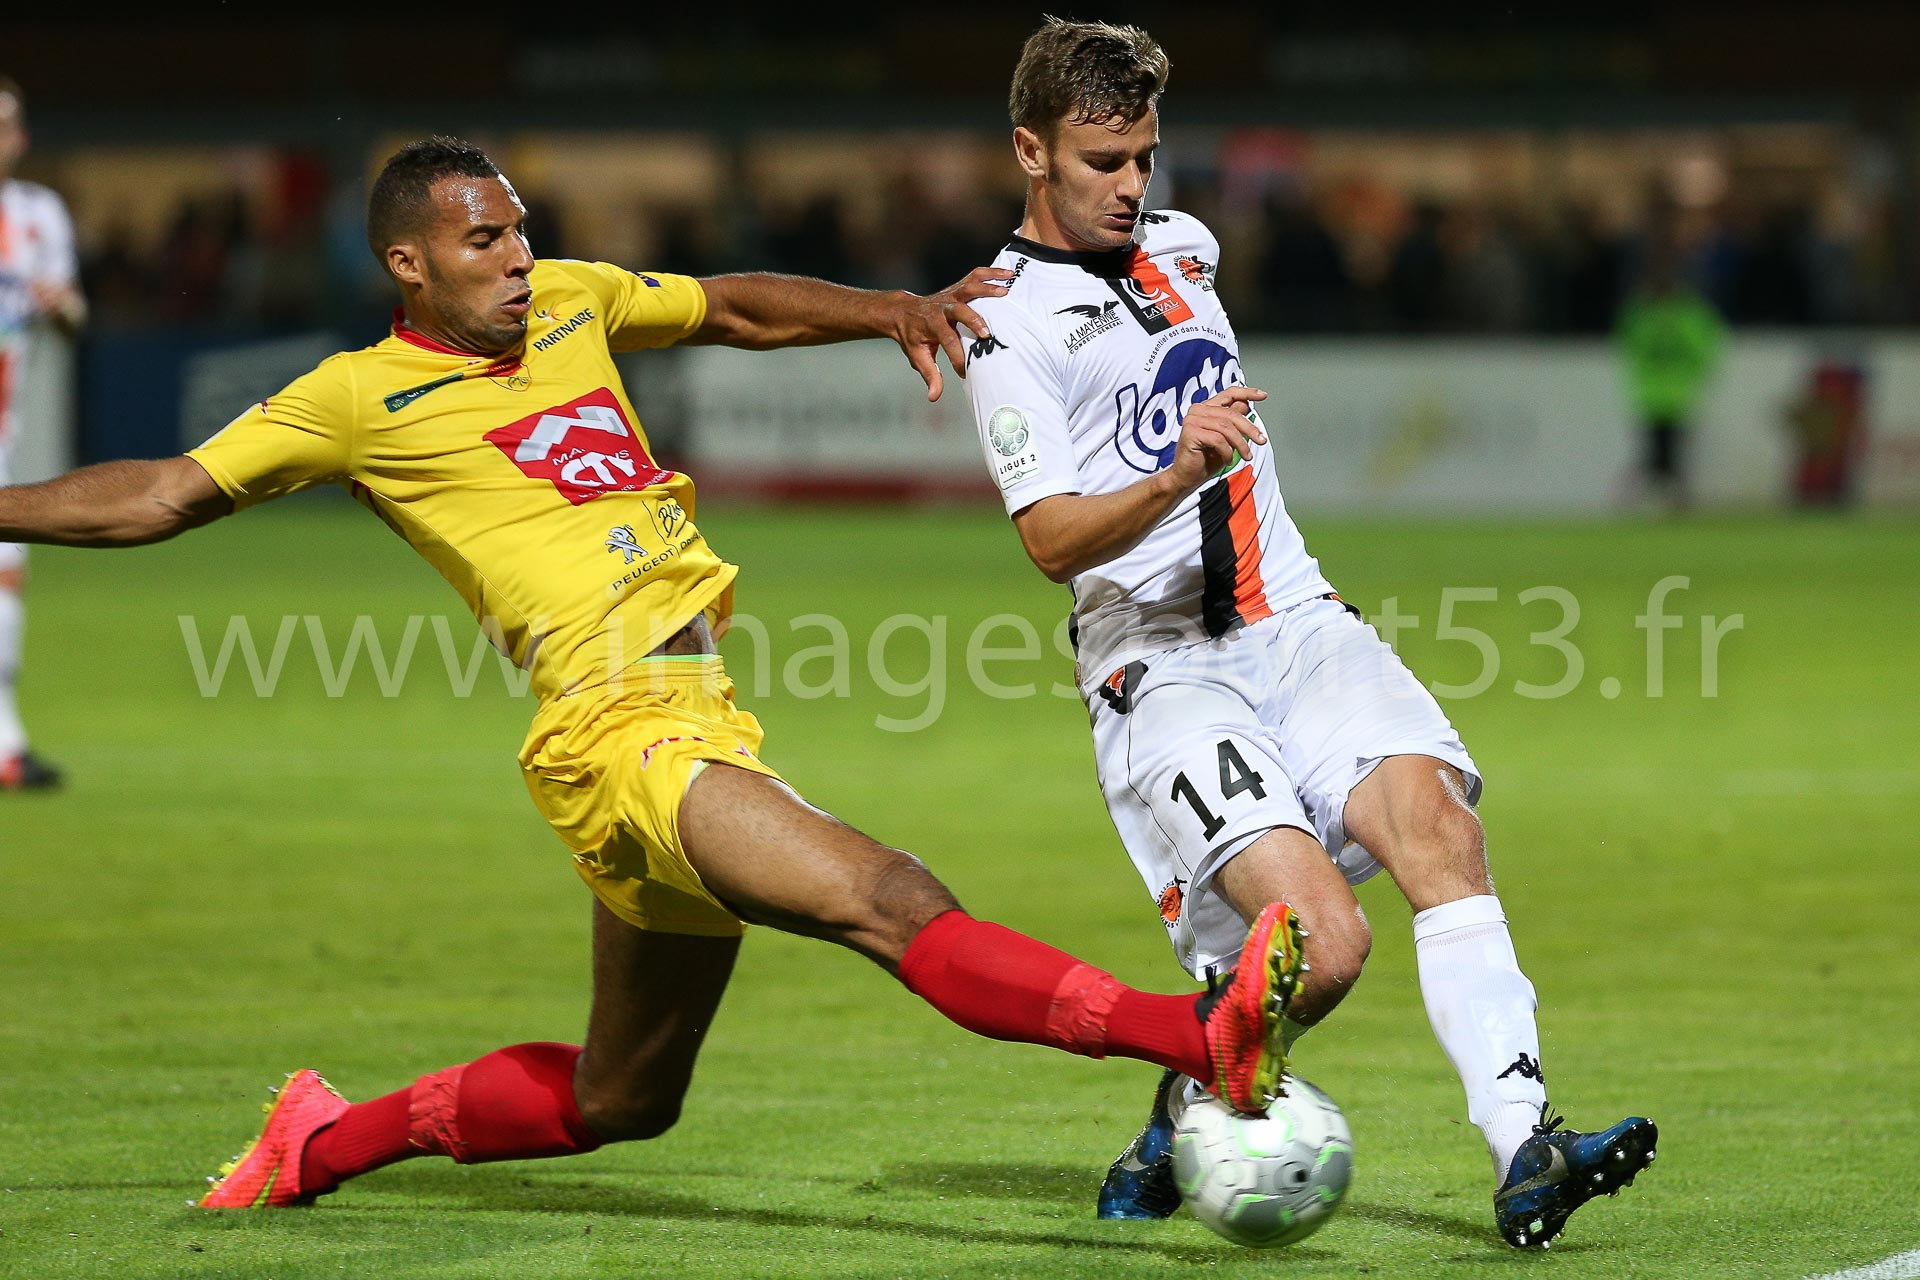 Wilfried LOUSY-DANIEL (US Orléans), Maxime BOURGEOIS (Stade Lav